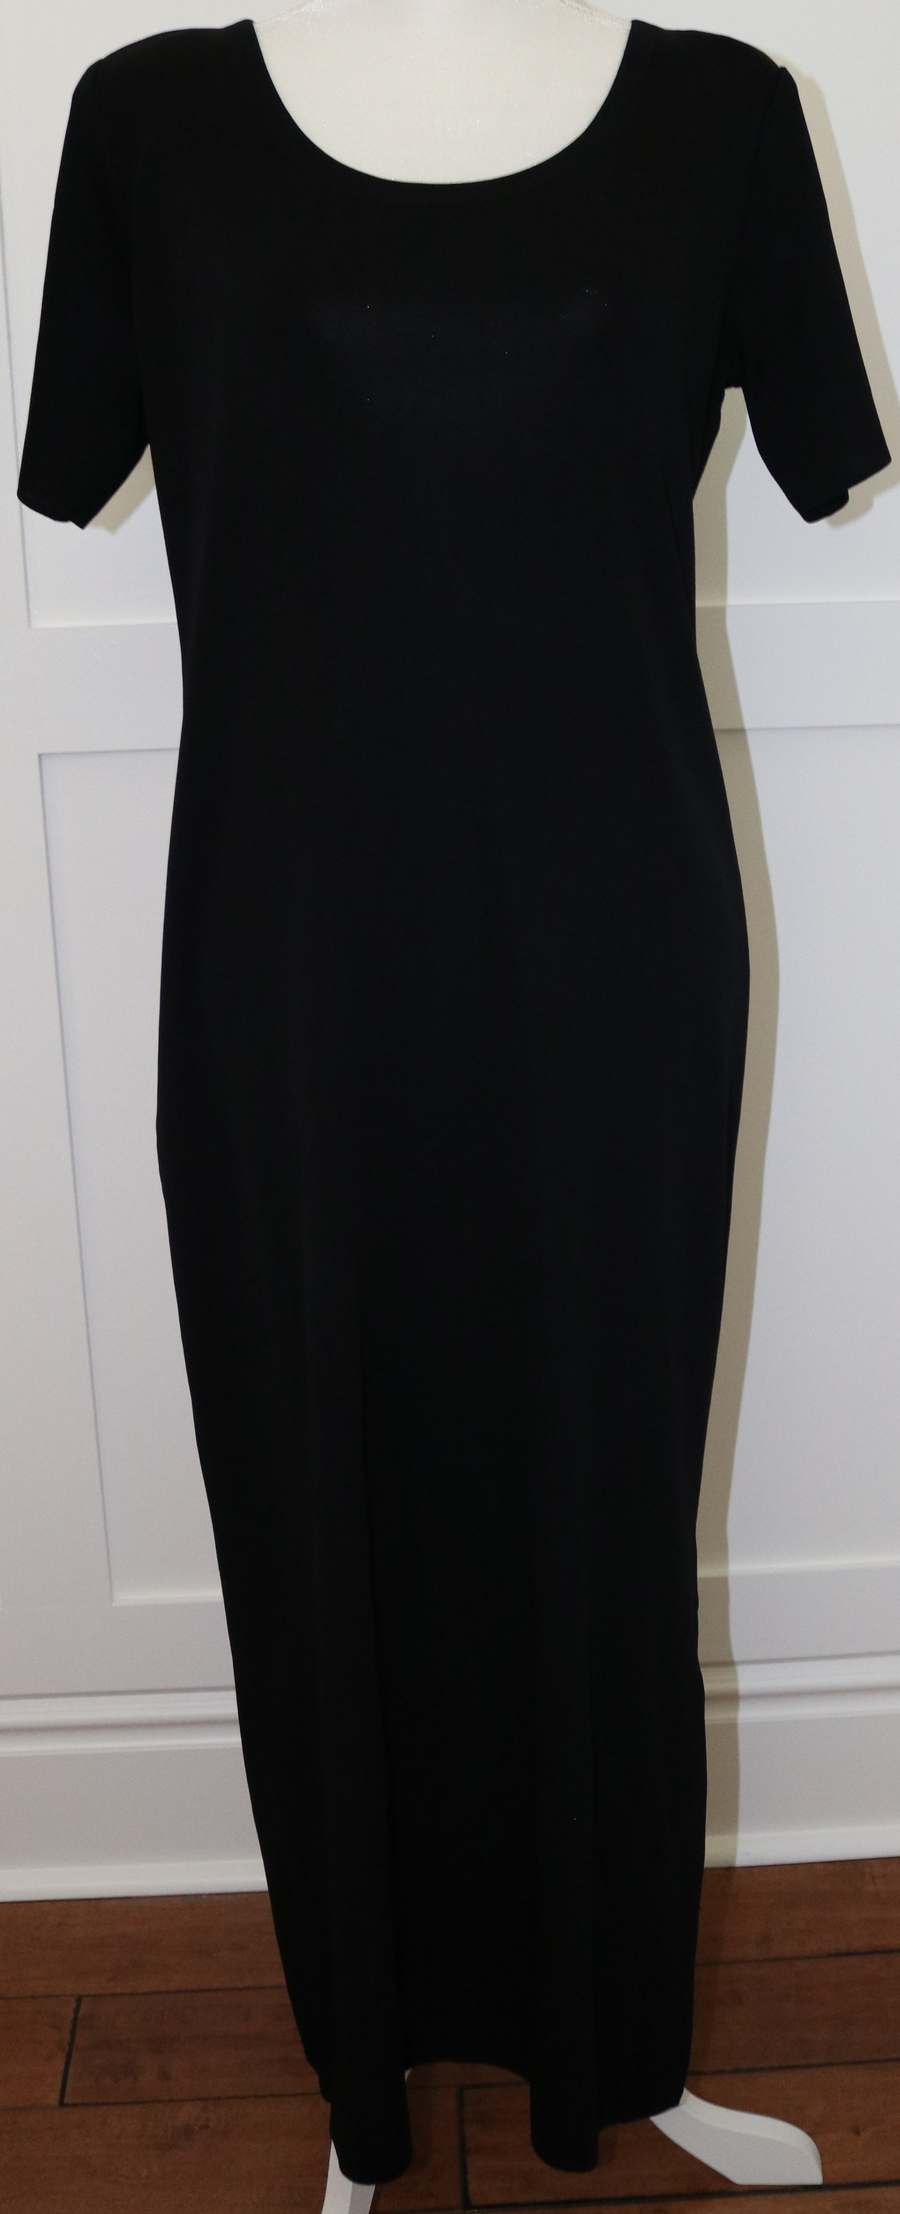 Exclusively Misook Black Short Sleeve Maxi Dress Size Petite Small Ps Ebay